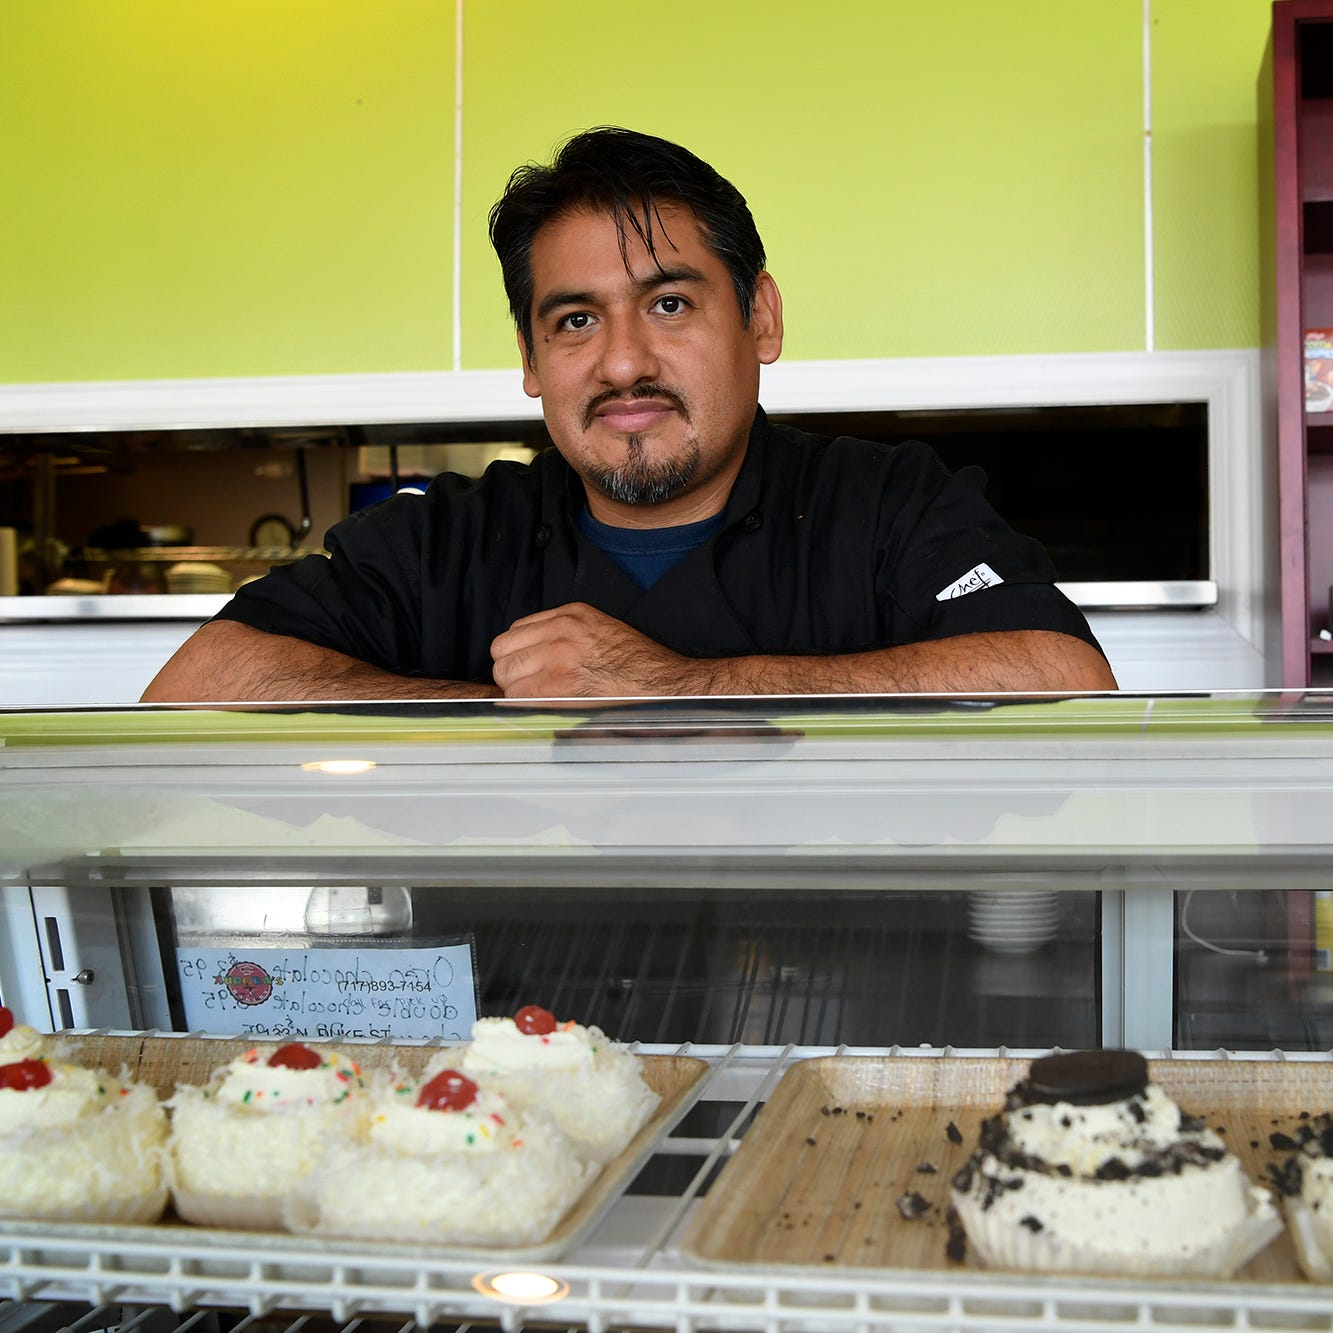 Mexican immigrant fulfills promise, opens bakery in York City